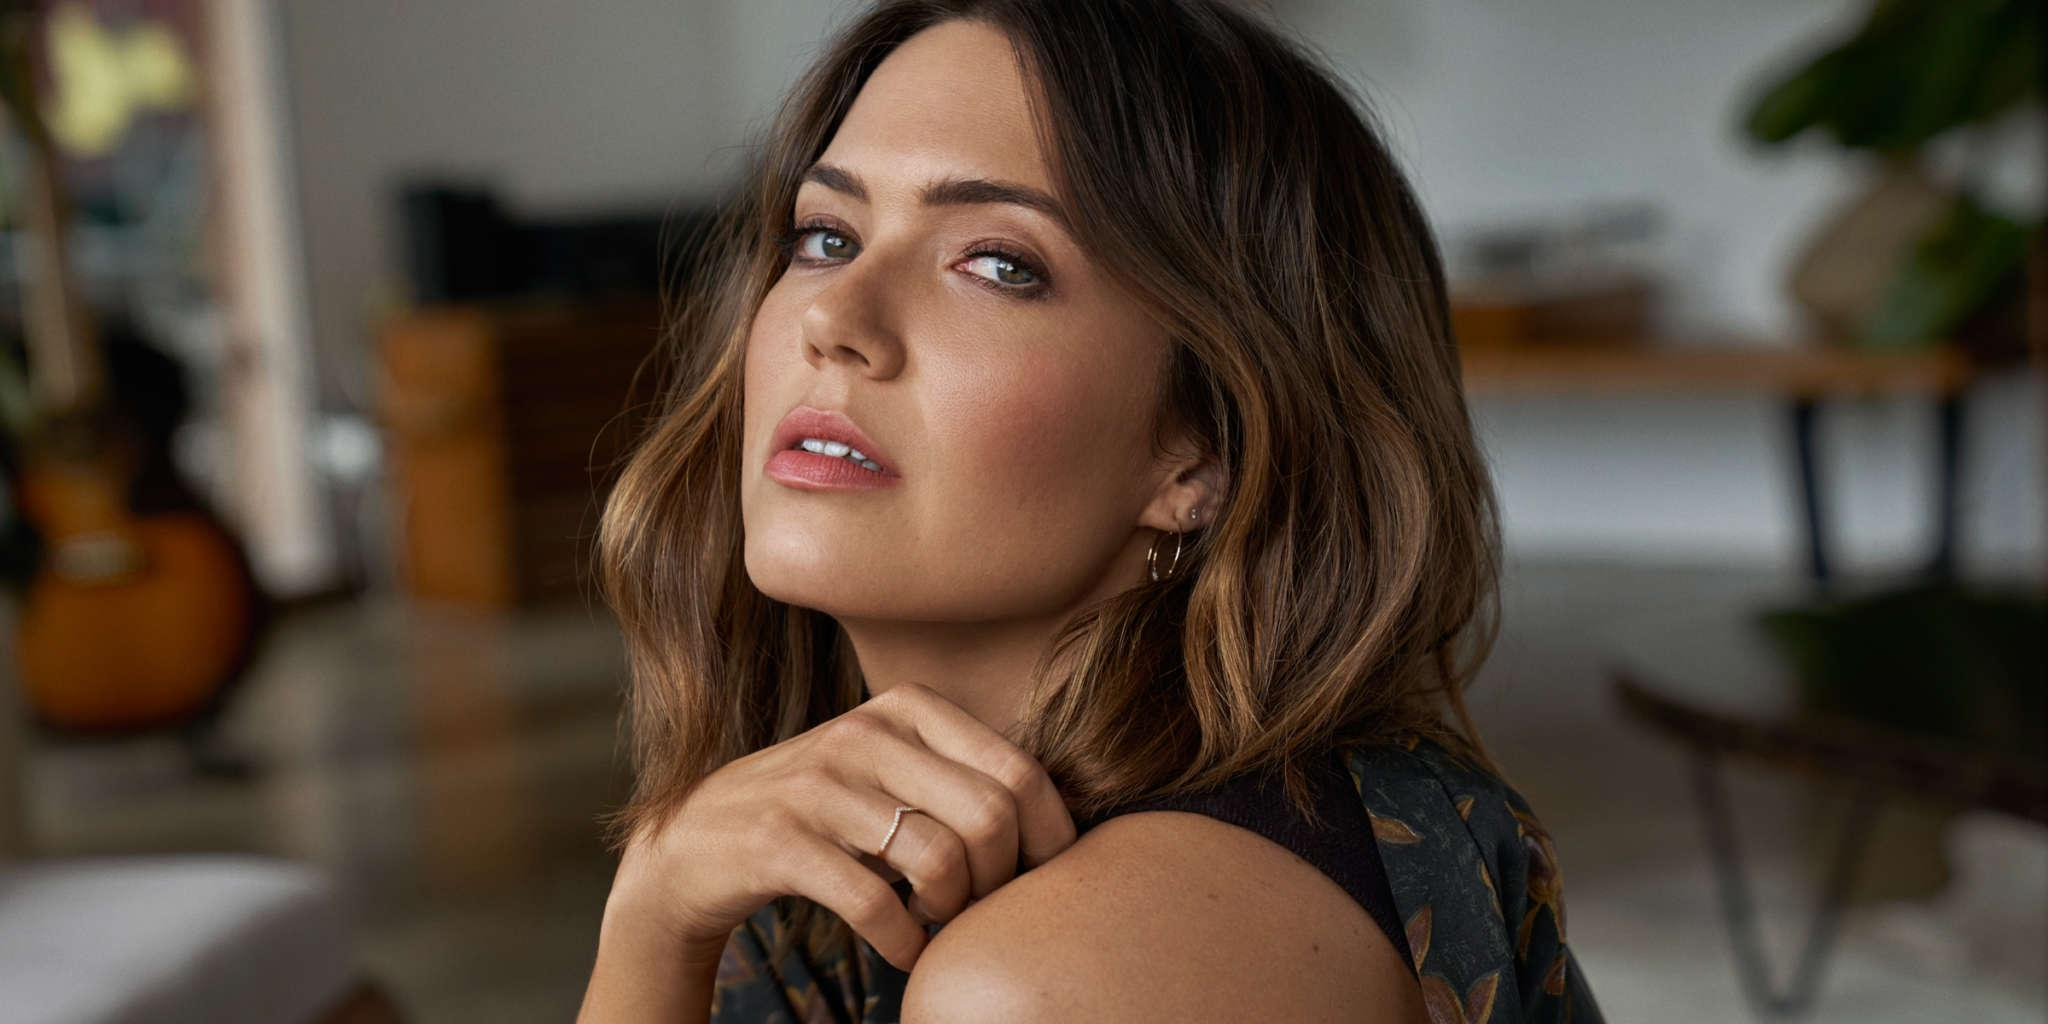 Mandy Moore Talks Being Considered A Pop Princess Like Britney Spears And Christina Aguilera - Argues That She Never Had Their 'Success'